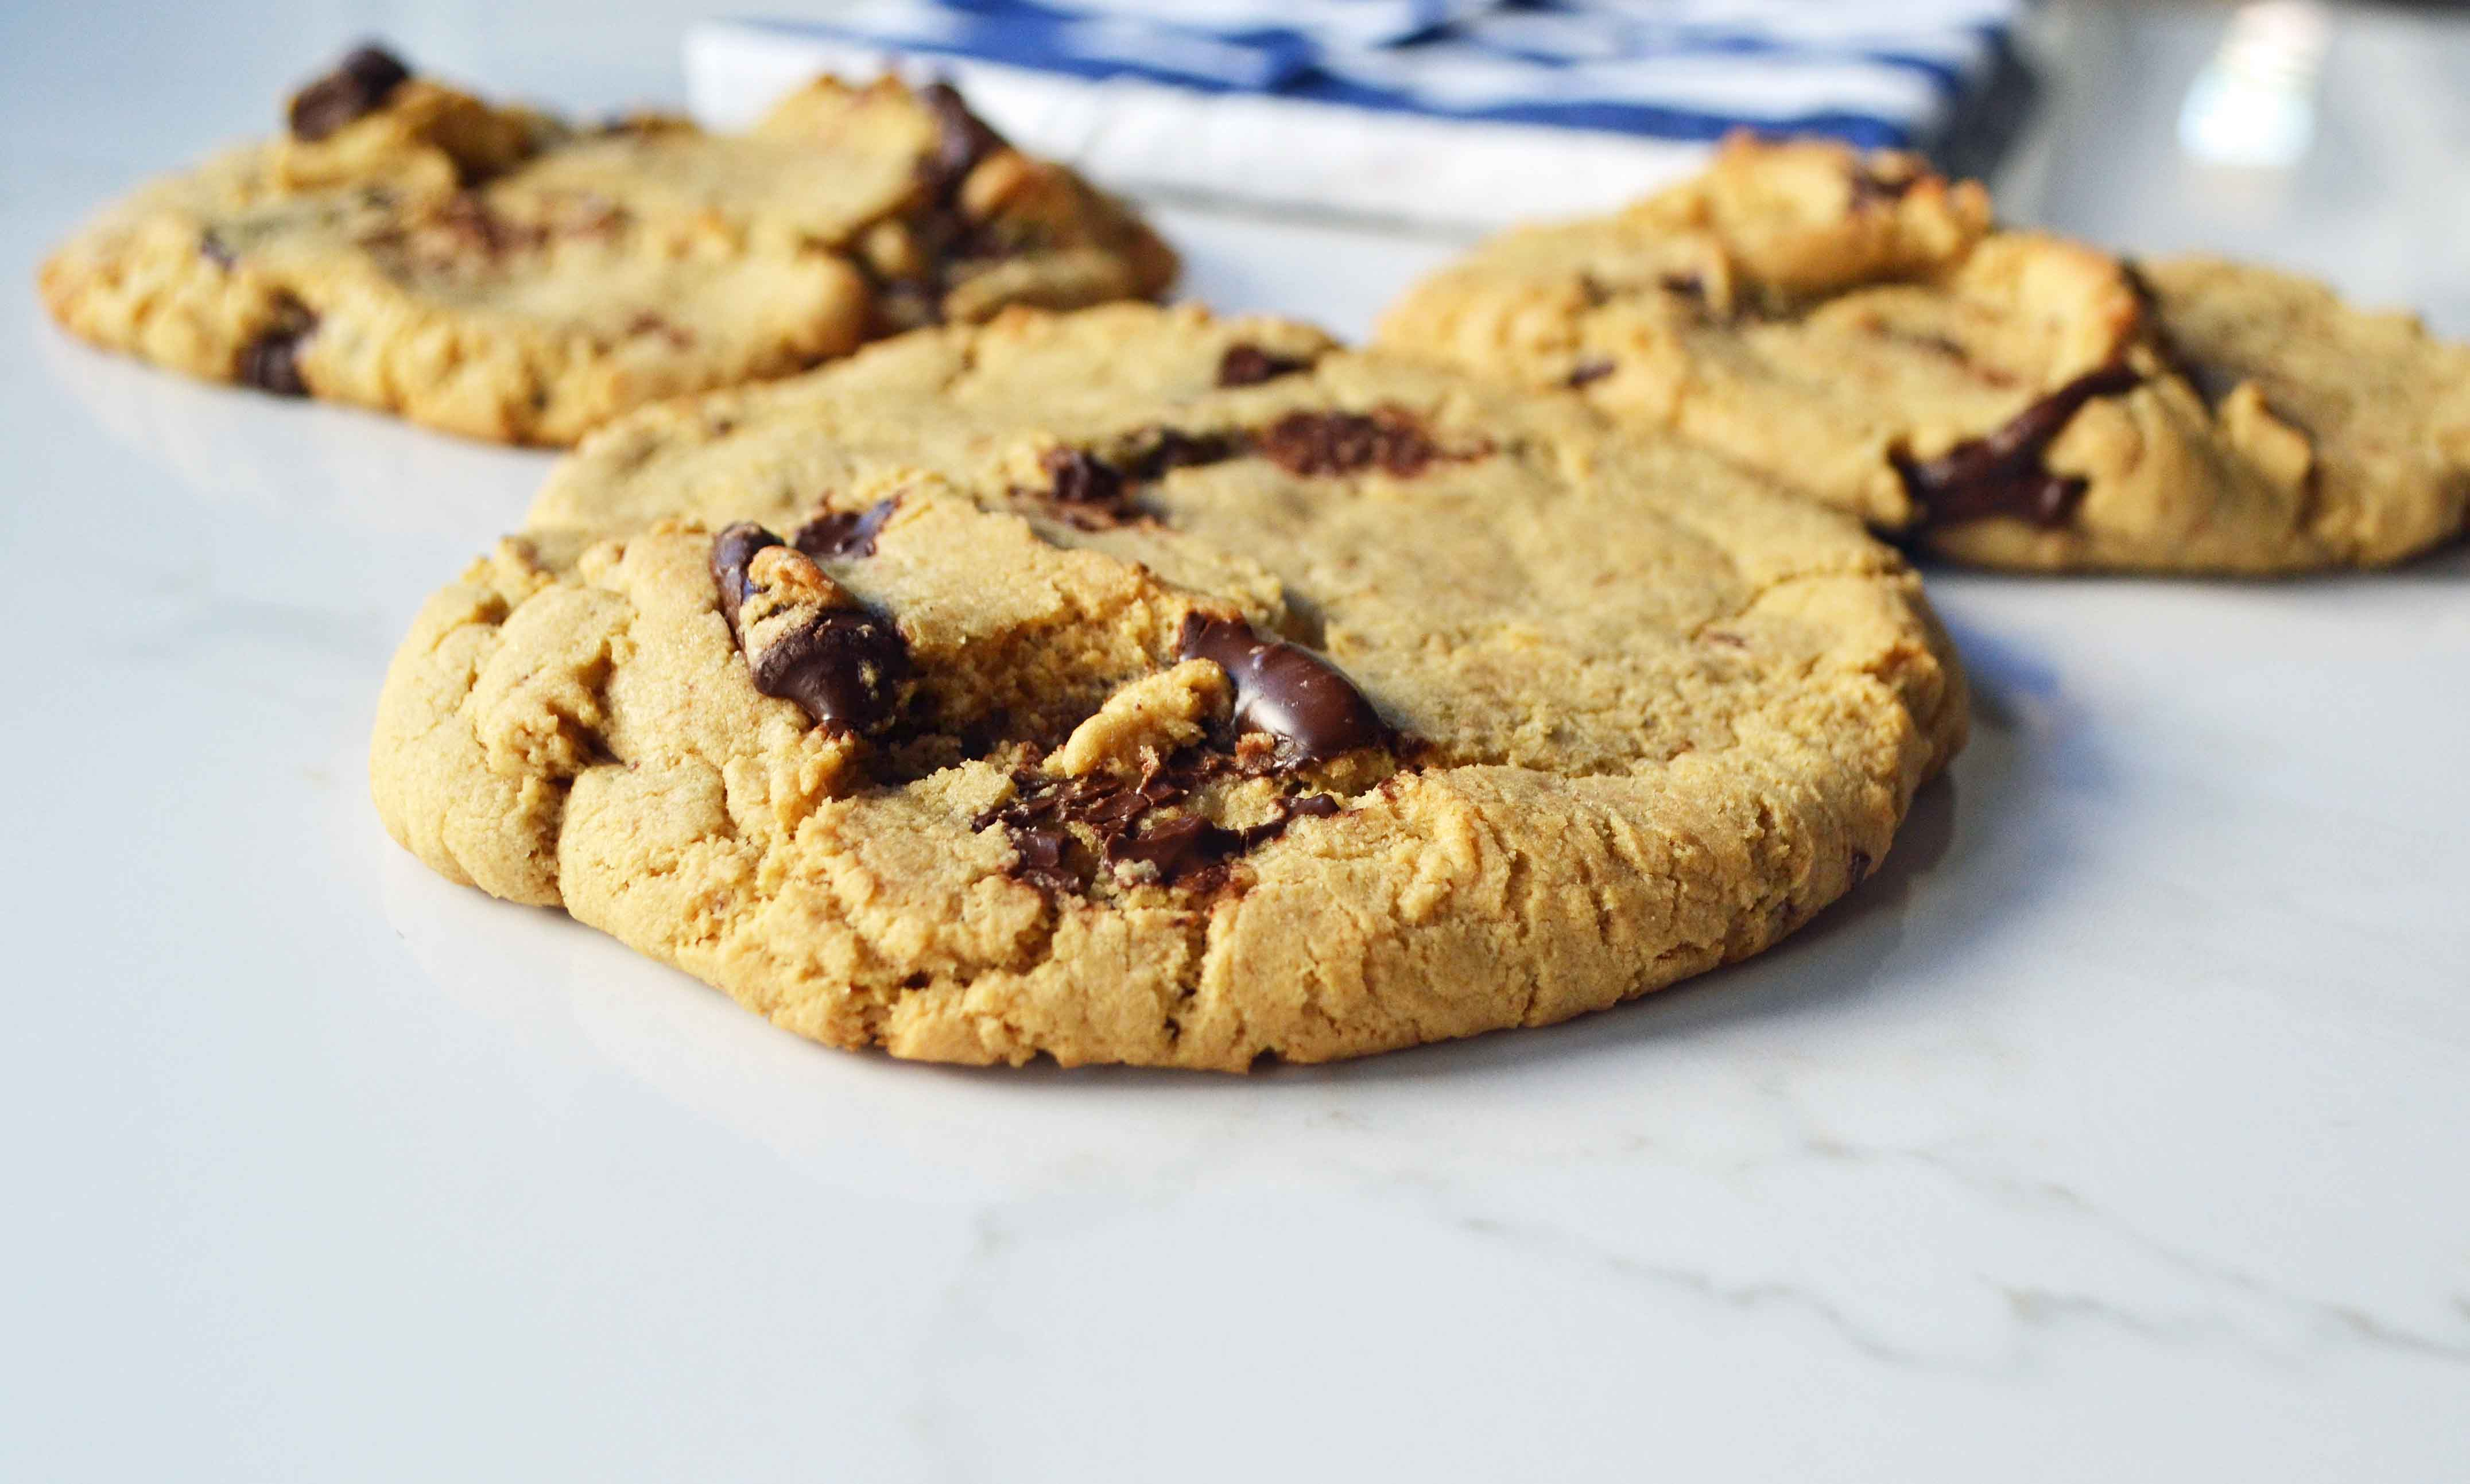 Lenny and Larry's Protein Cookie Copycat by Modern Honey l www.modernhoney.com 16 grams of protein per cookie